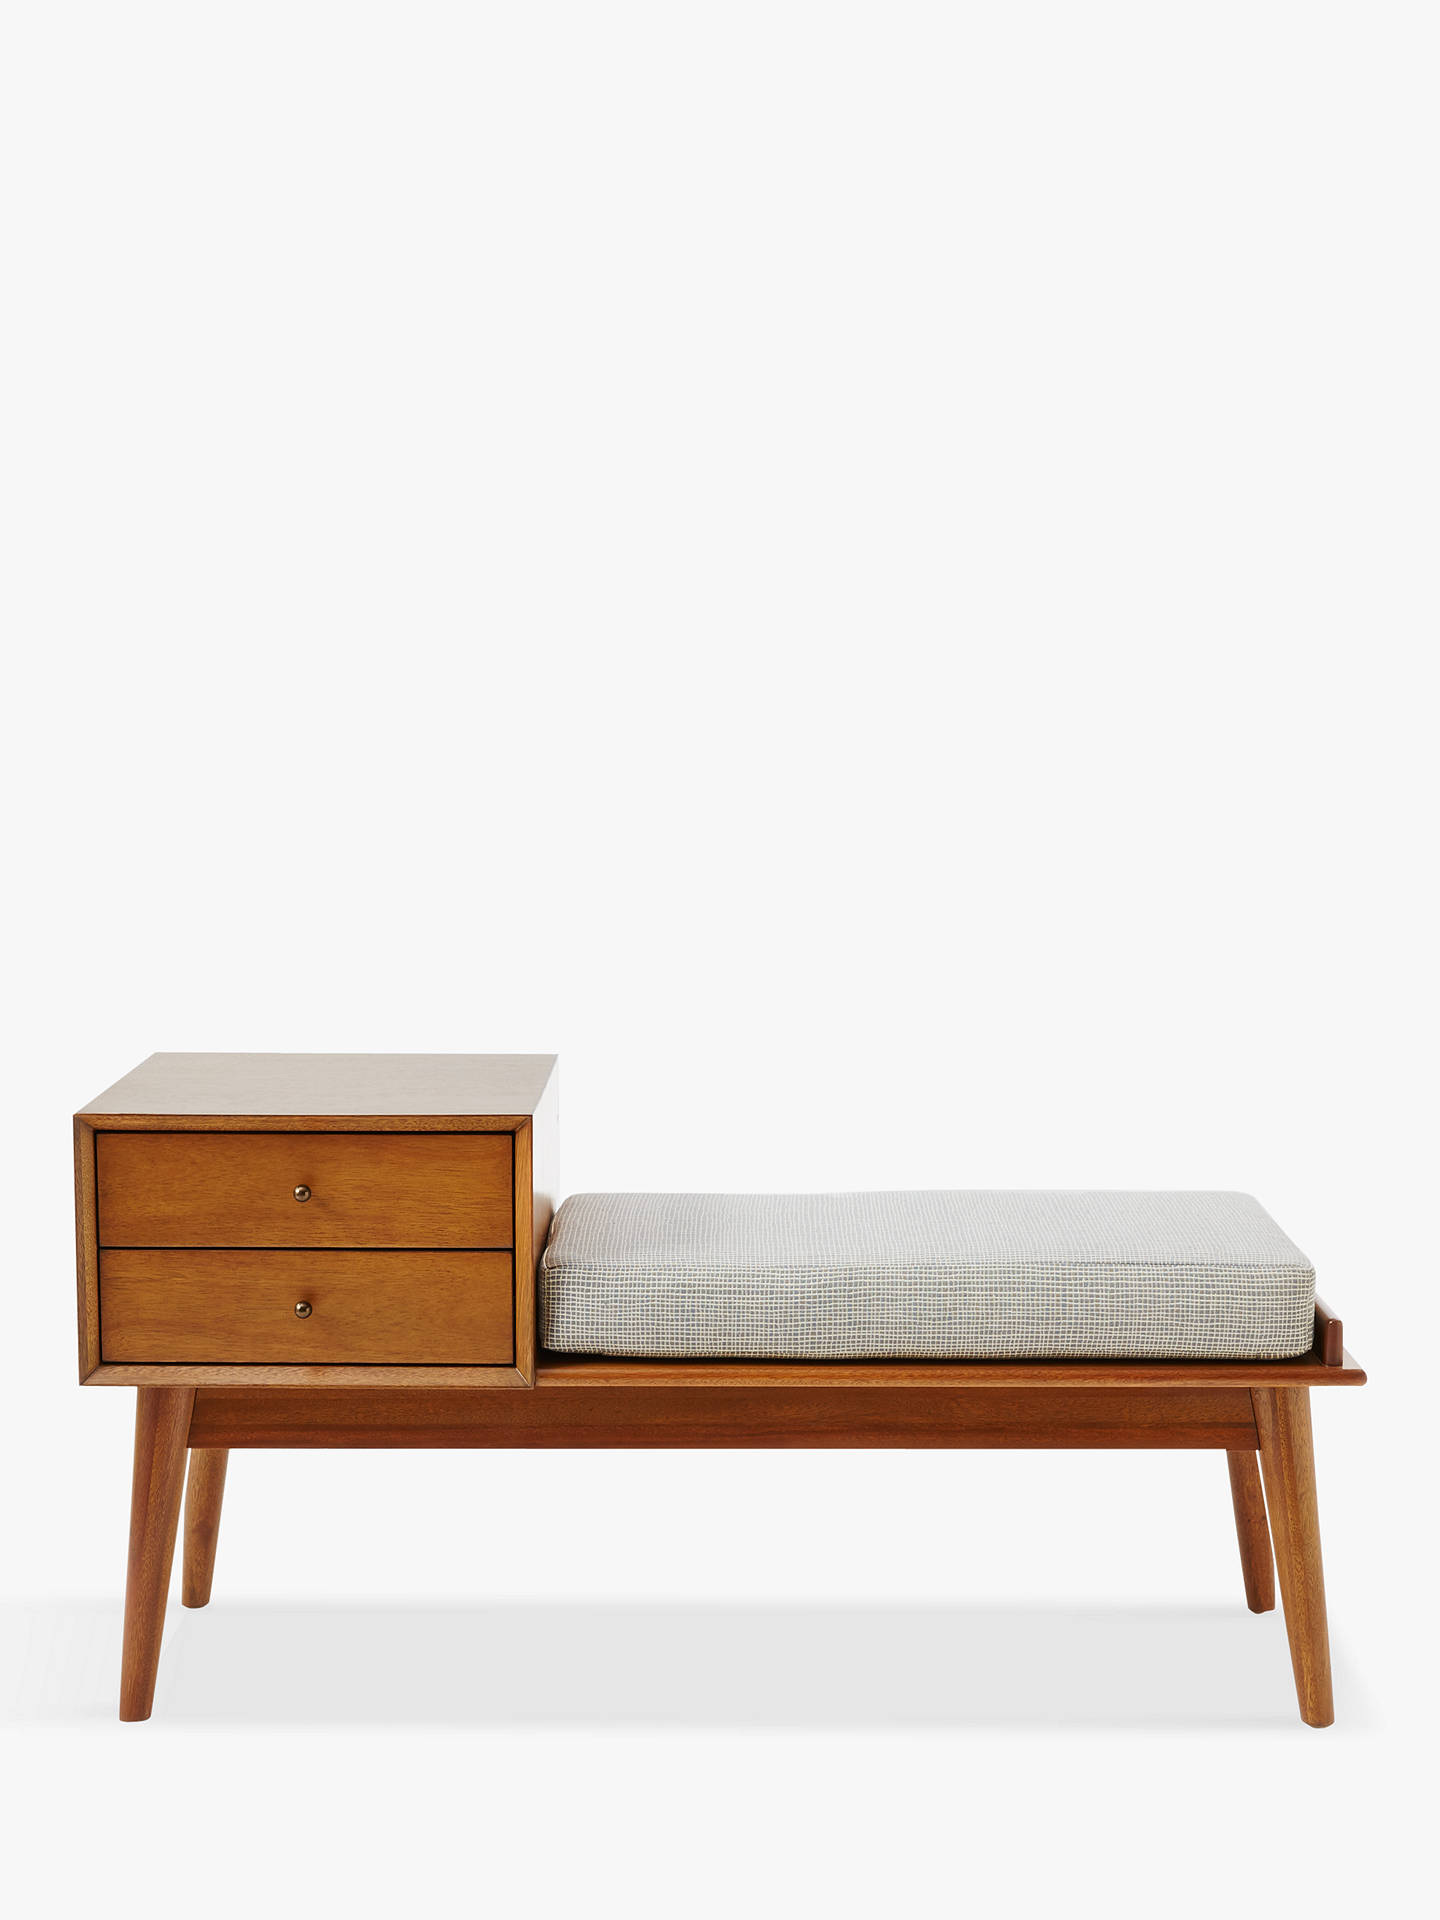 Awesome West Elm Mid Century Storage Bench Fsc Certified Eucalyptus And Acacia Wood Acorn Cjindustries Chair Design For Home Cjindustriesco